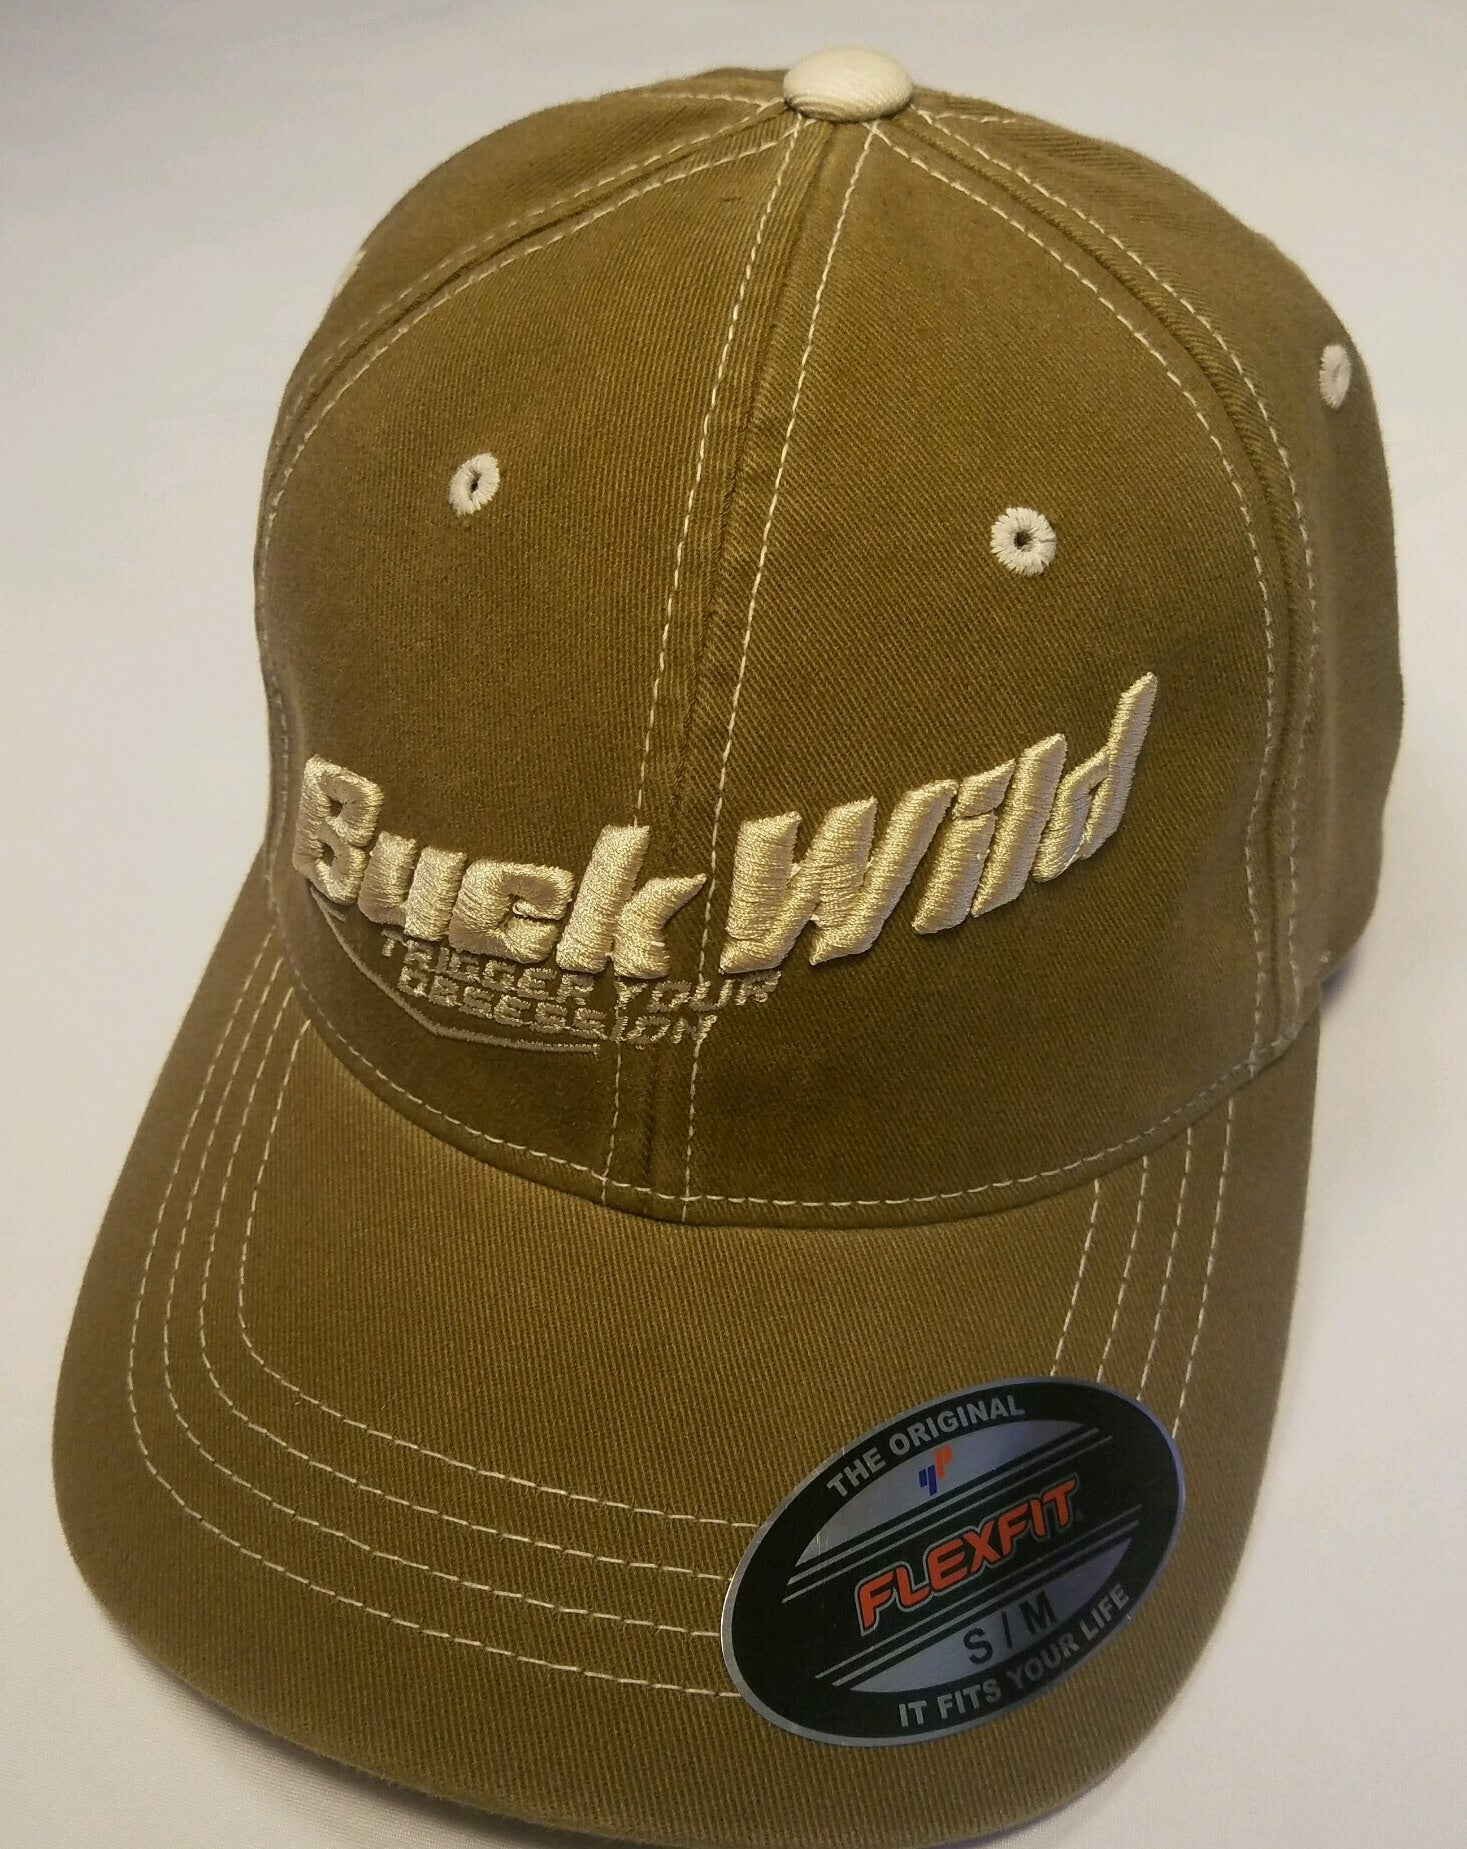 Buck Wild Flex Fit Hat (PUFF) - Dirty Doe & Buck Wild ,hunting apparel,camo,girls that hunt,huntress, buck wild,deer shirts,buck shirts,country shirt,country girl shirts, amazon,cabelas,bass pro shop,sportmans,